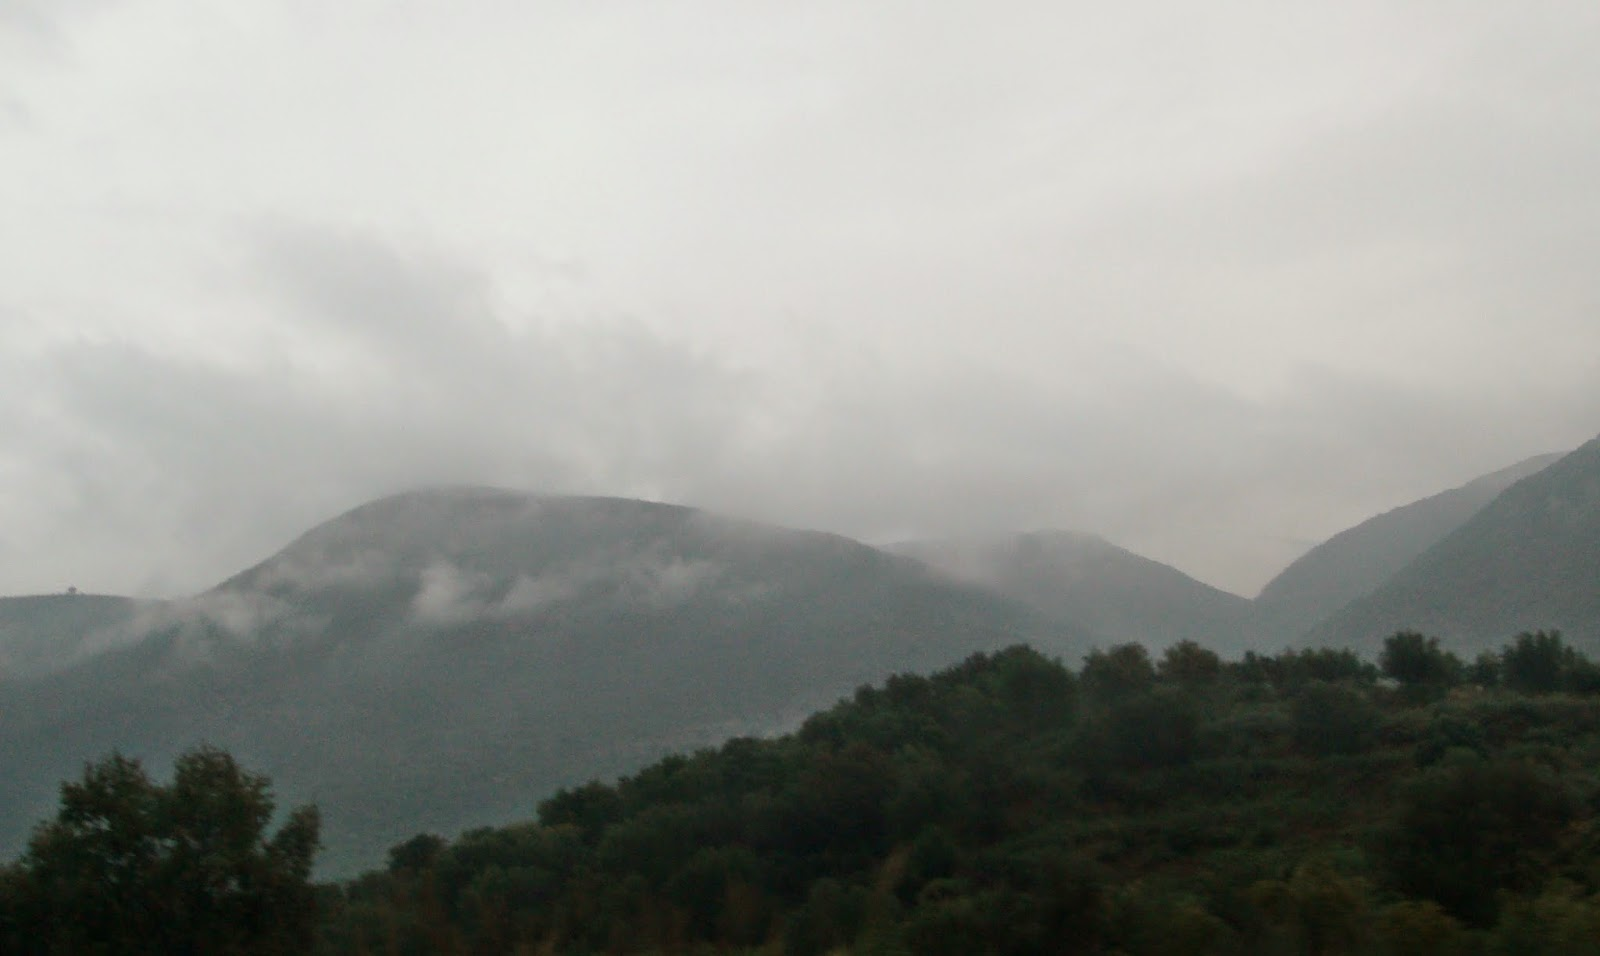 Cloudy weather in Greece